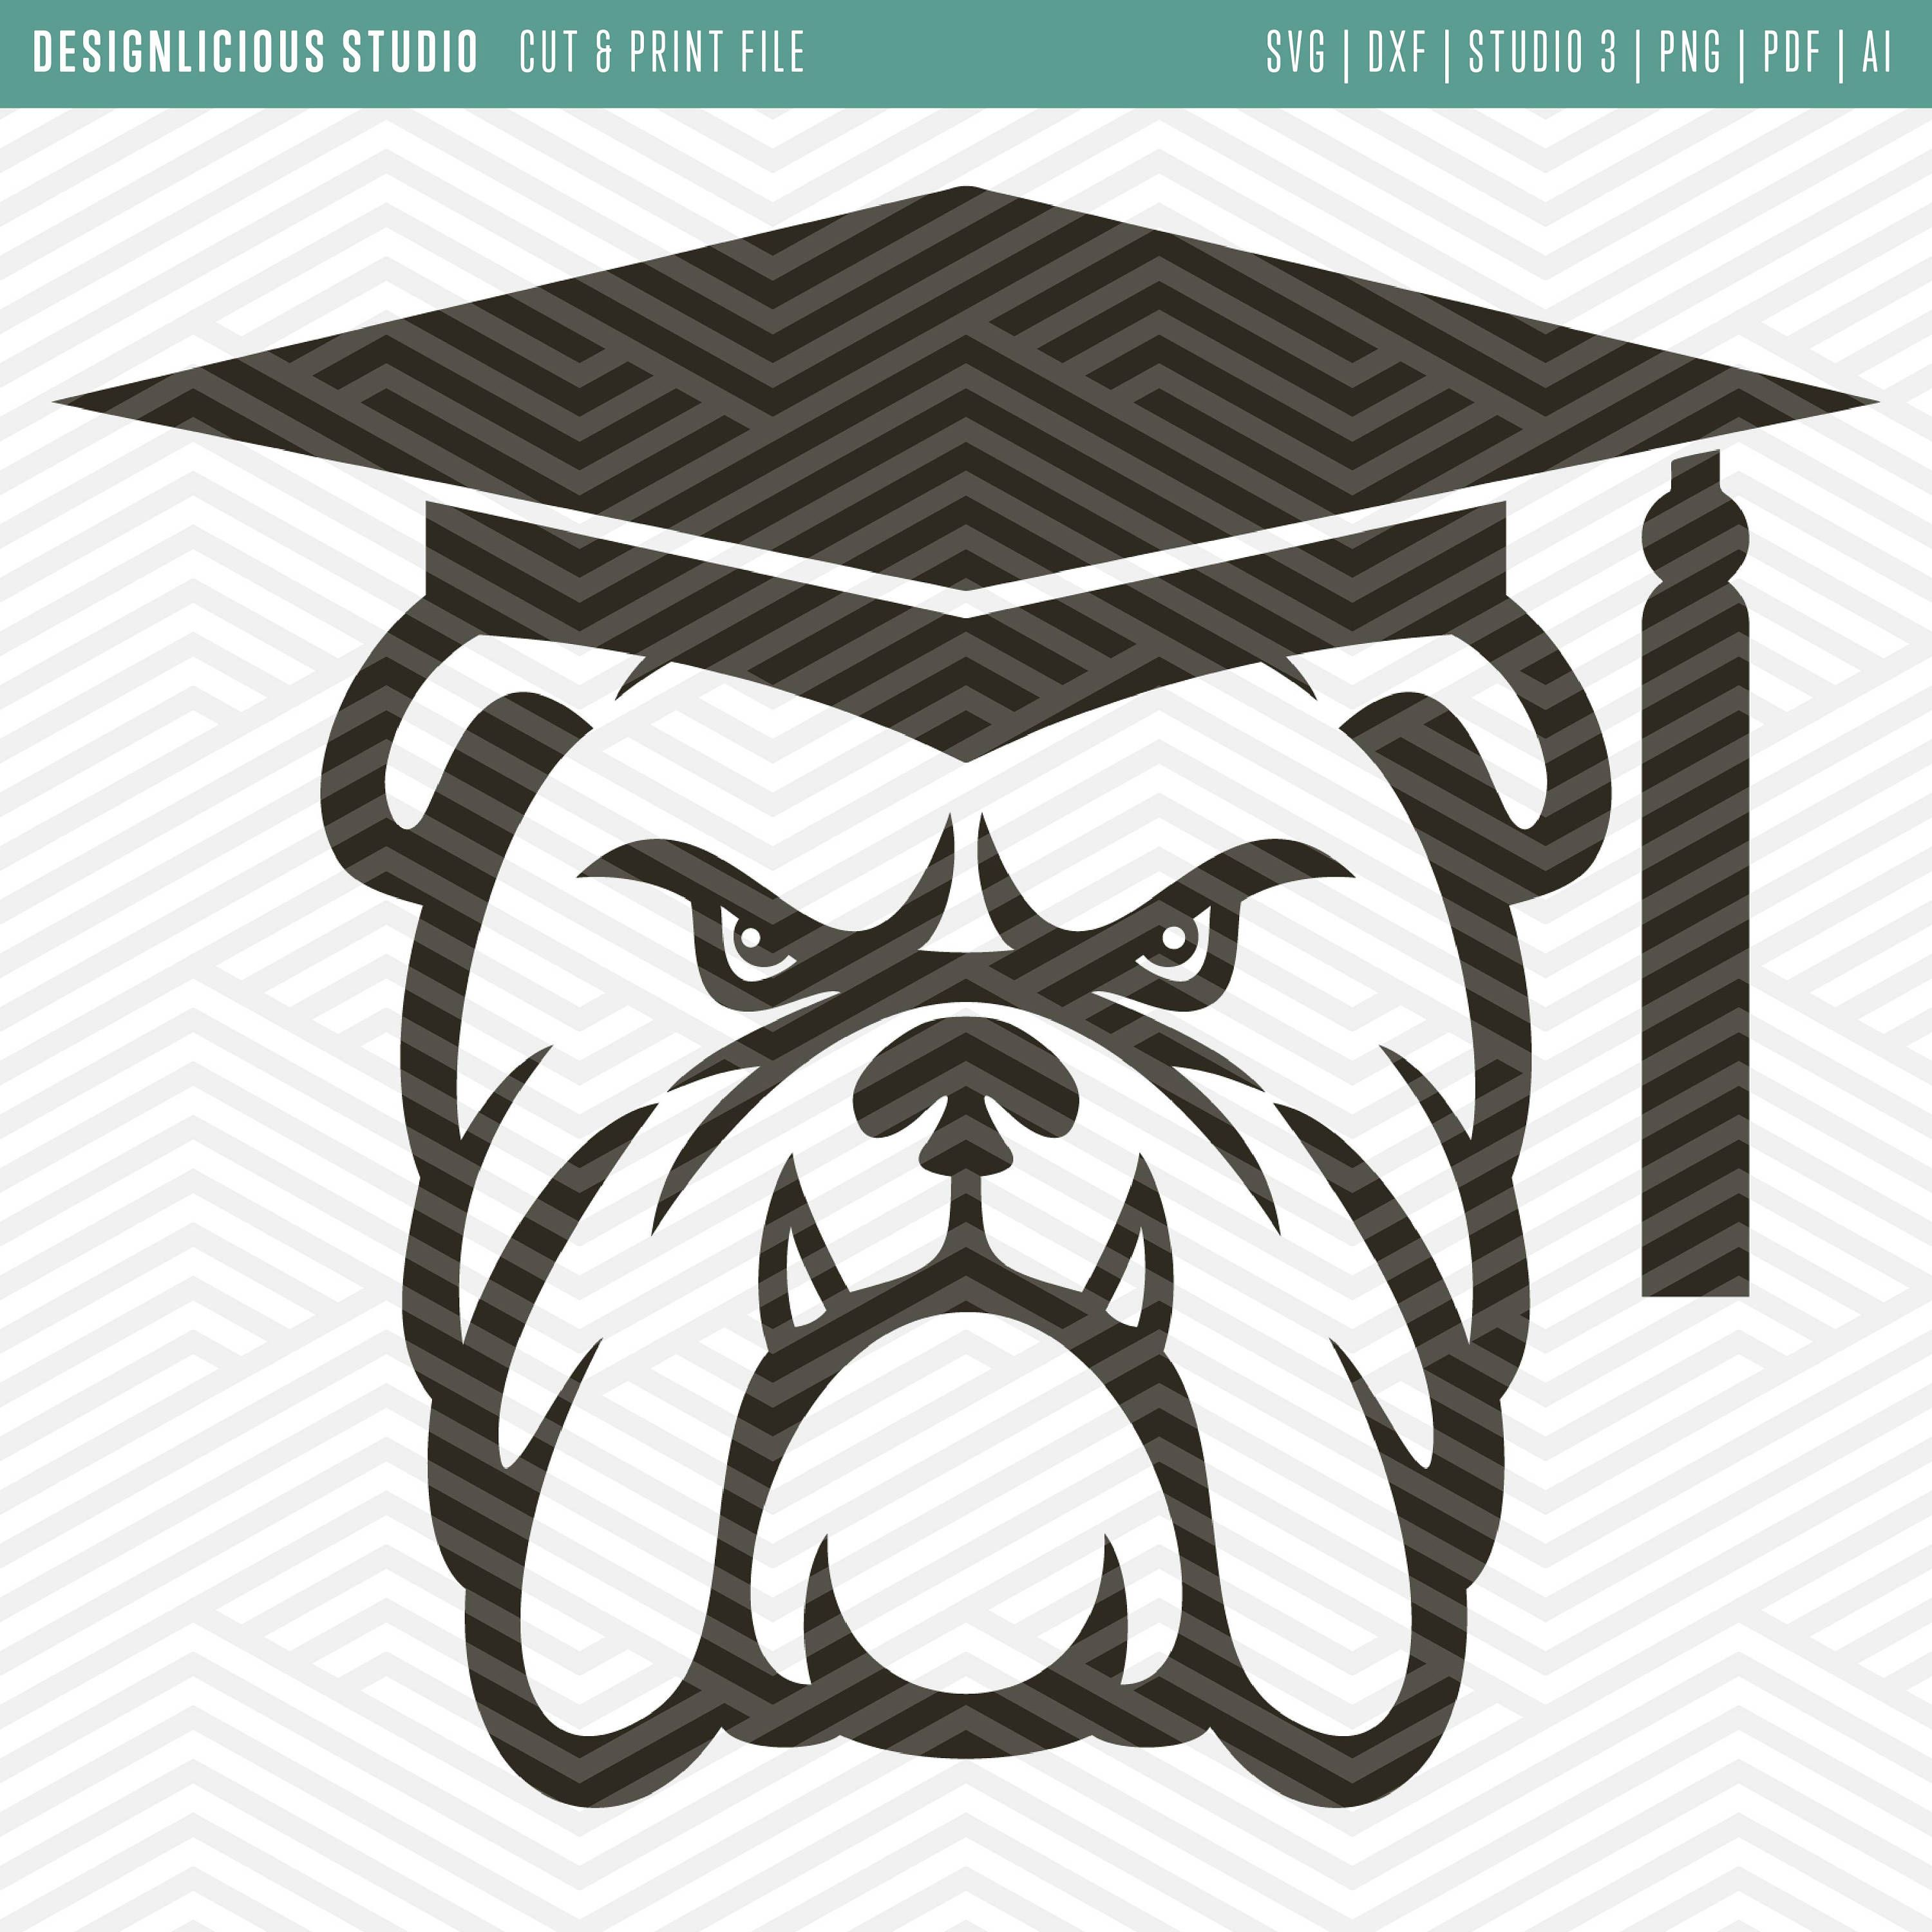 jpg library stock Cut print files thank. Vector bulldog graduation cap clipart